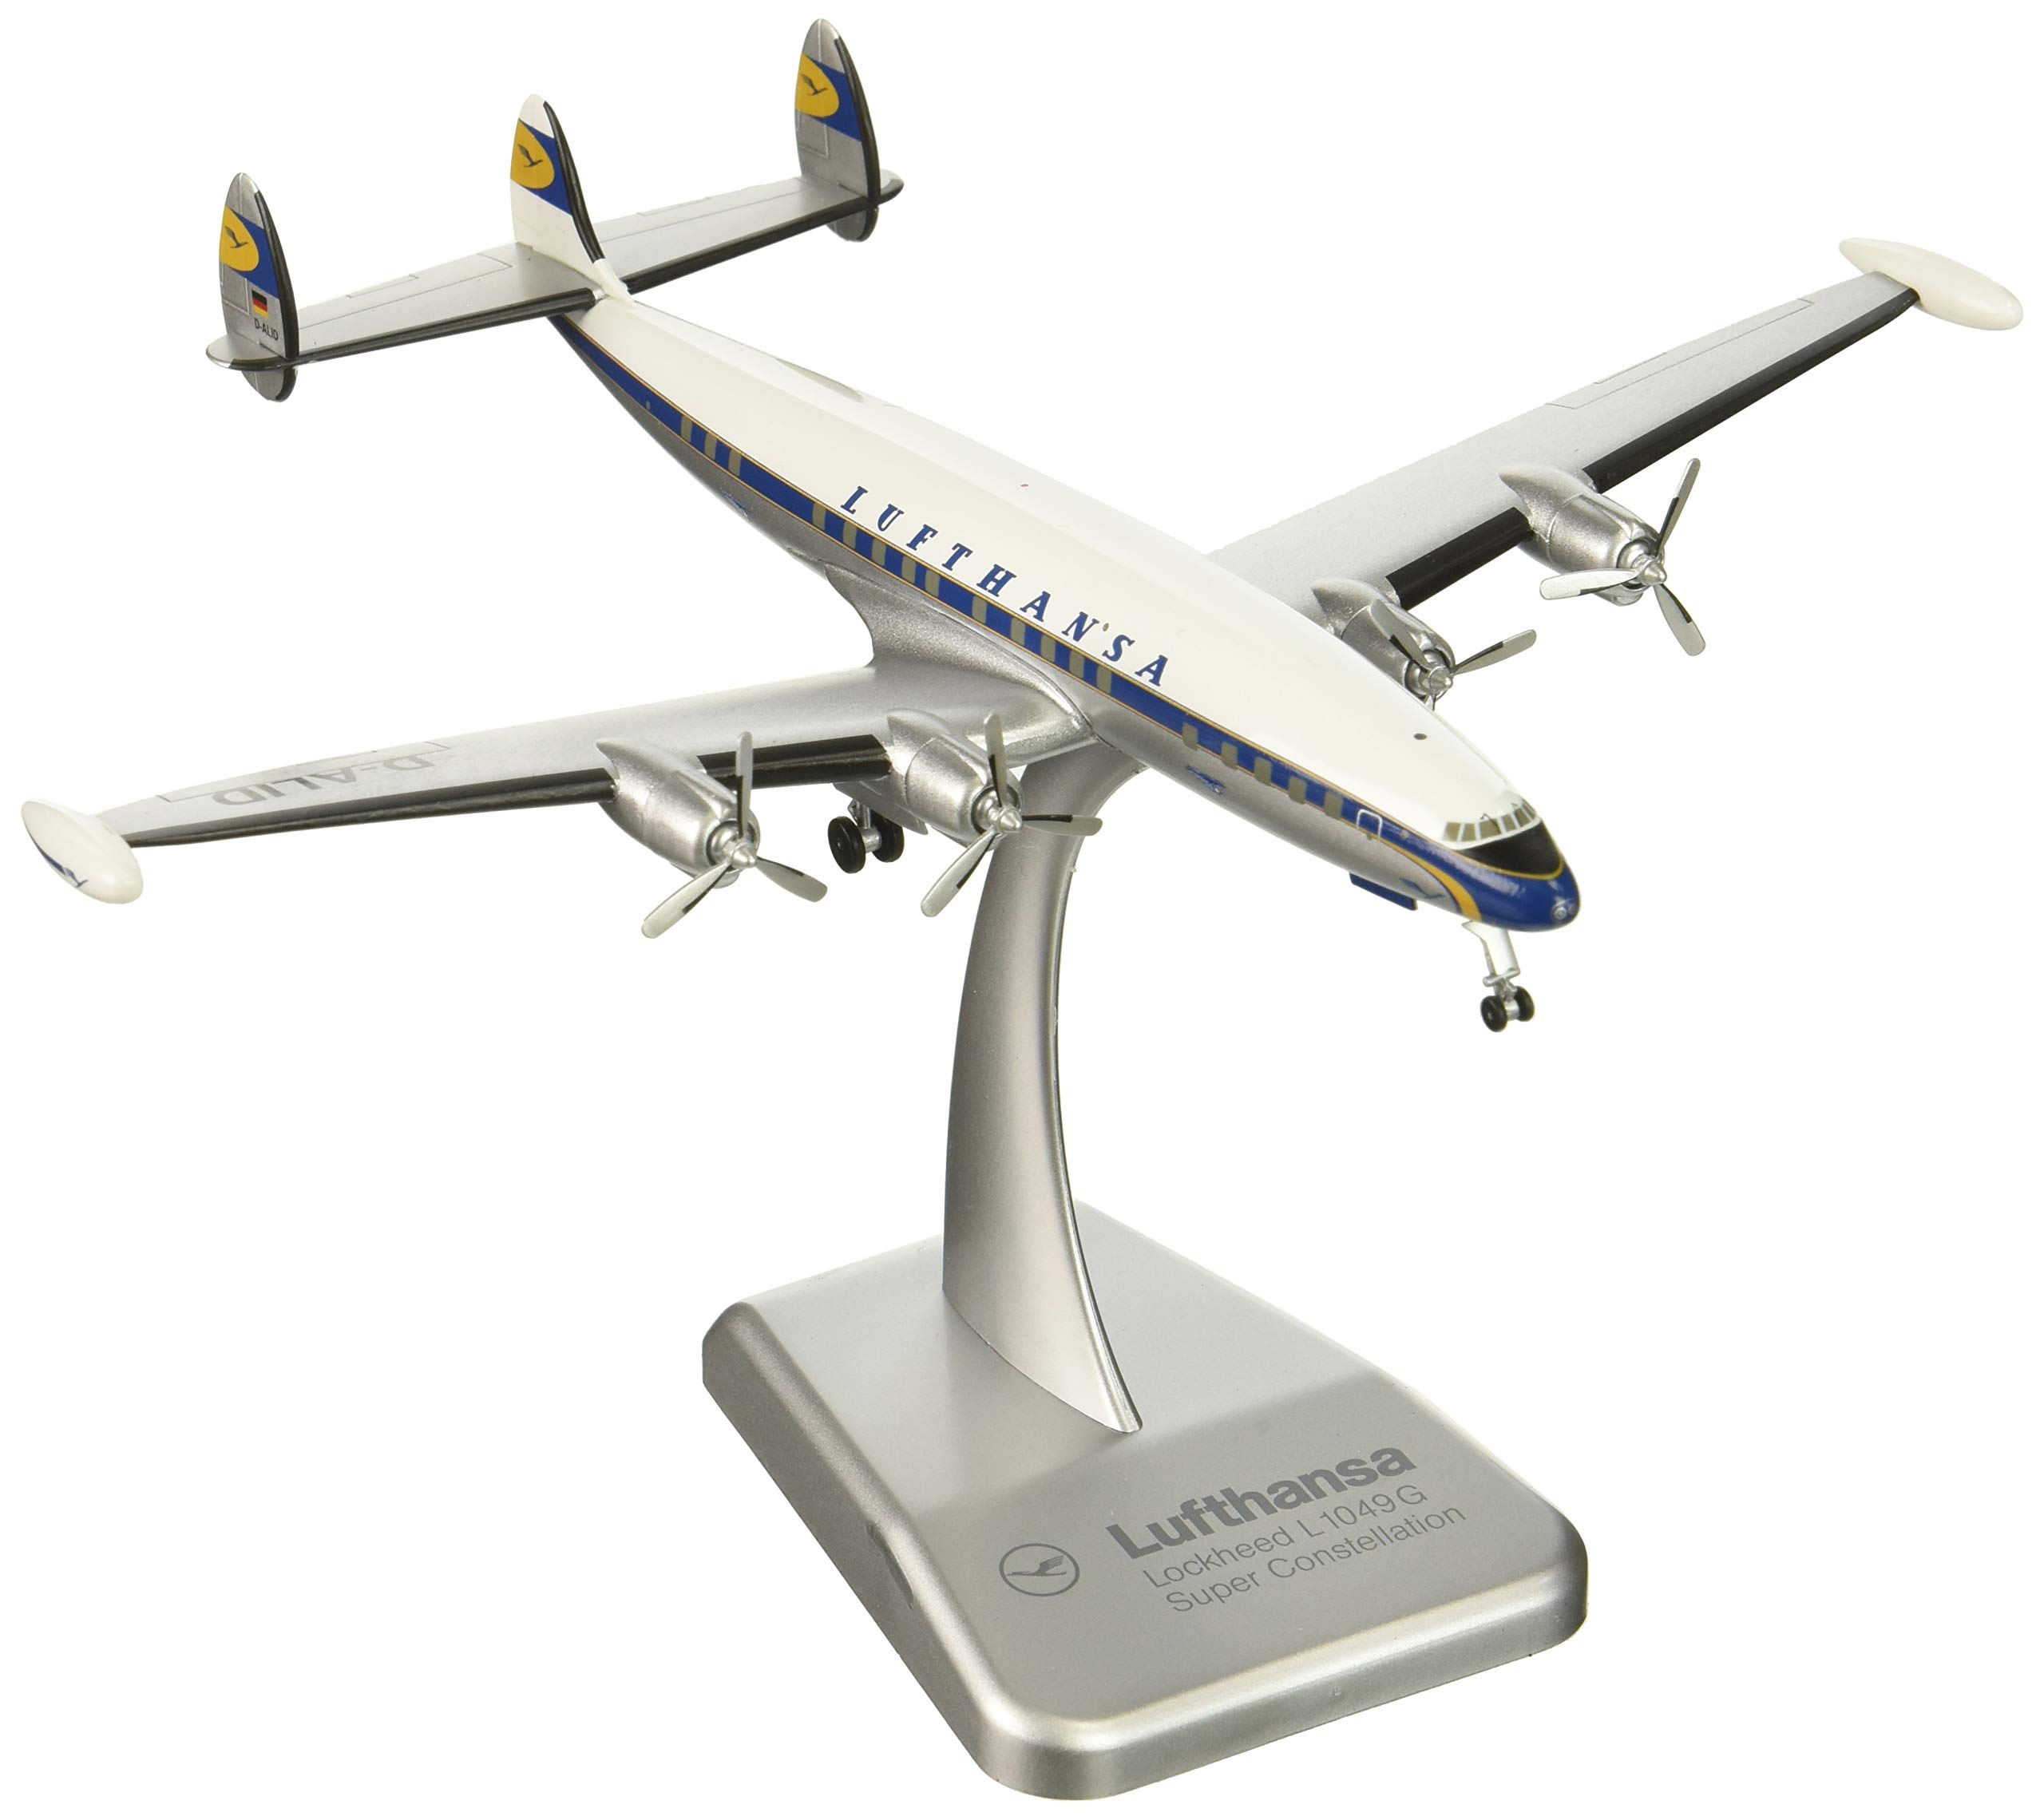 Daron Hogan Lufthansa L1049 Reg D-ALID Die-Cast Model Kit 1/200 Scale by Daron (Image #1)